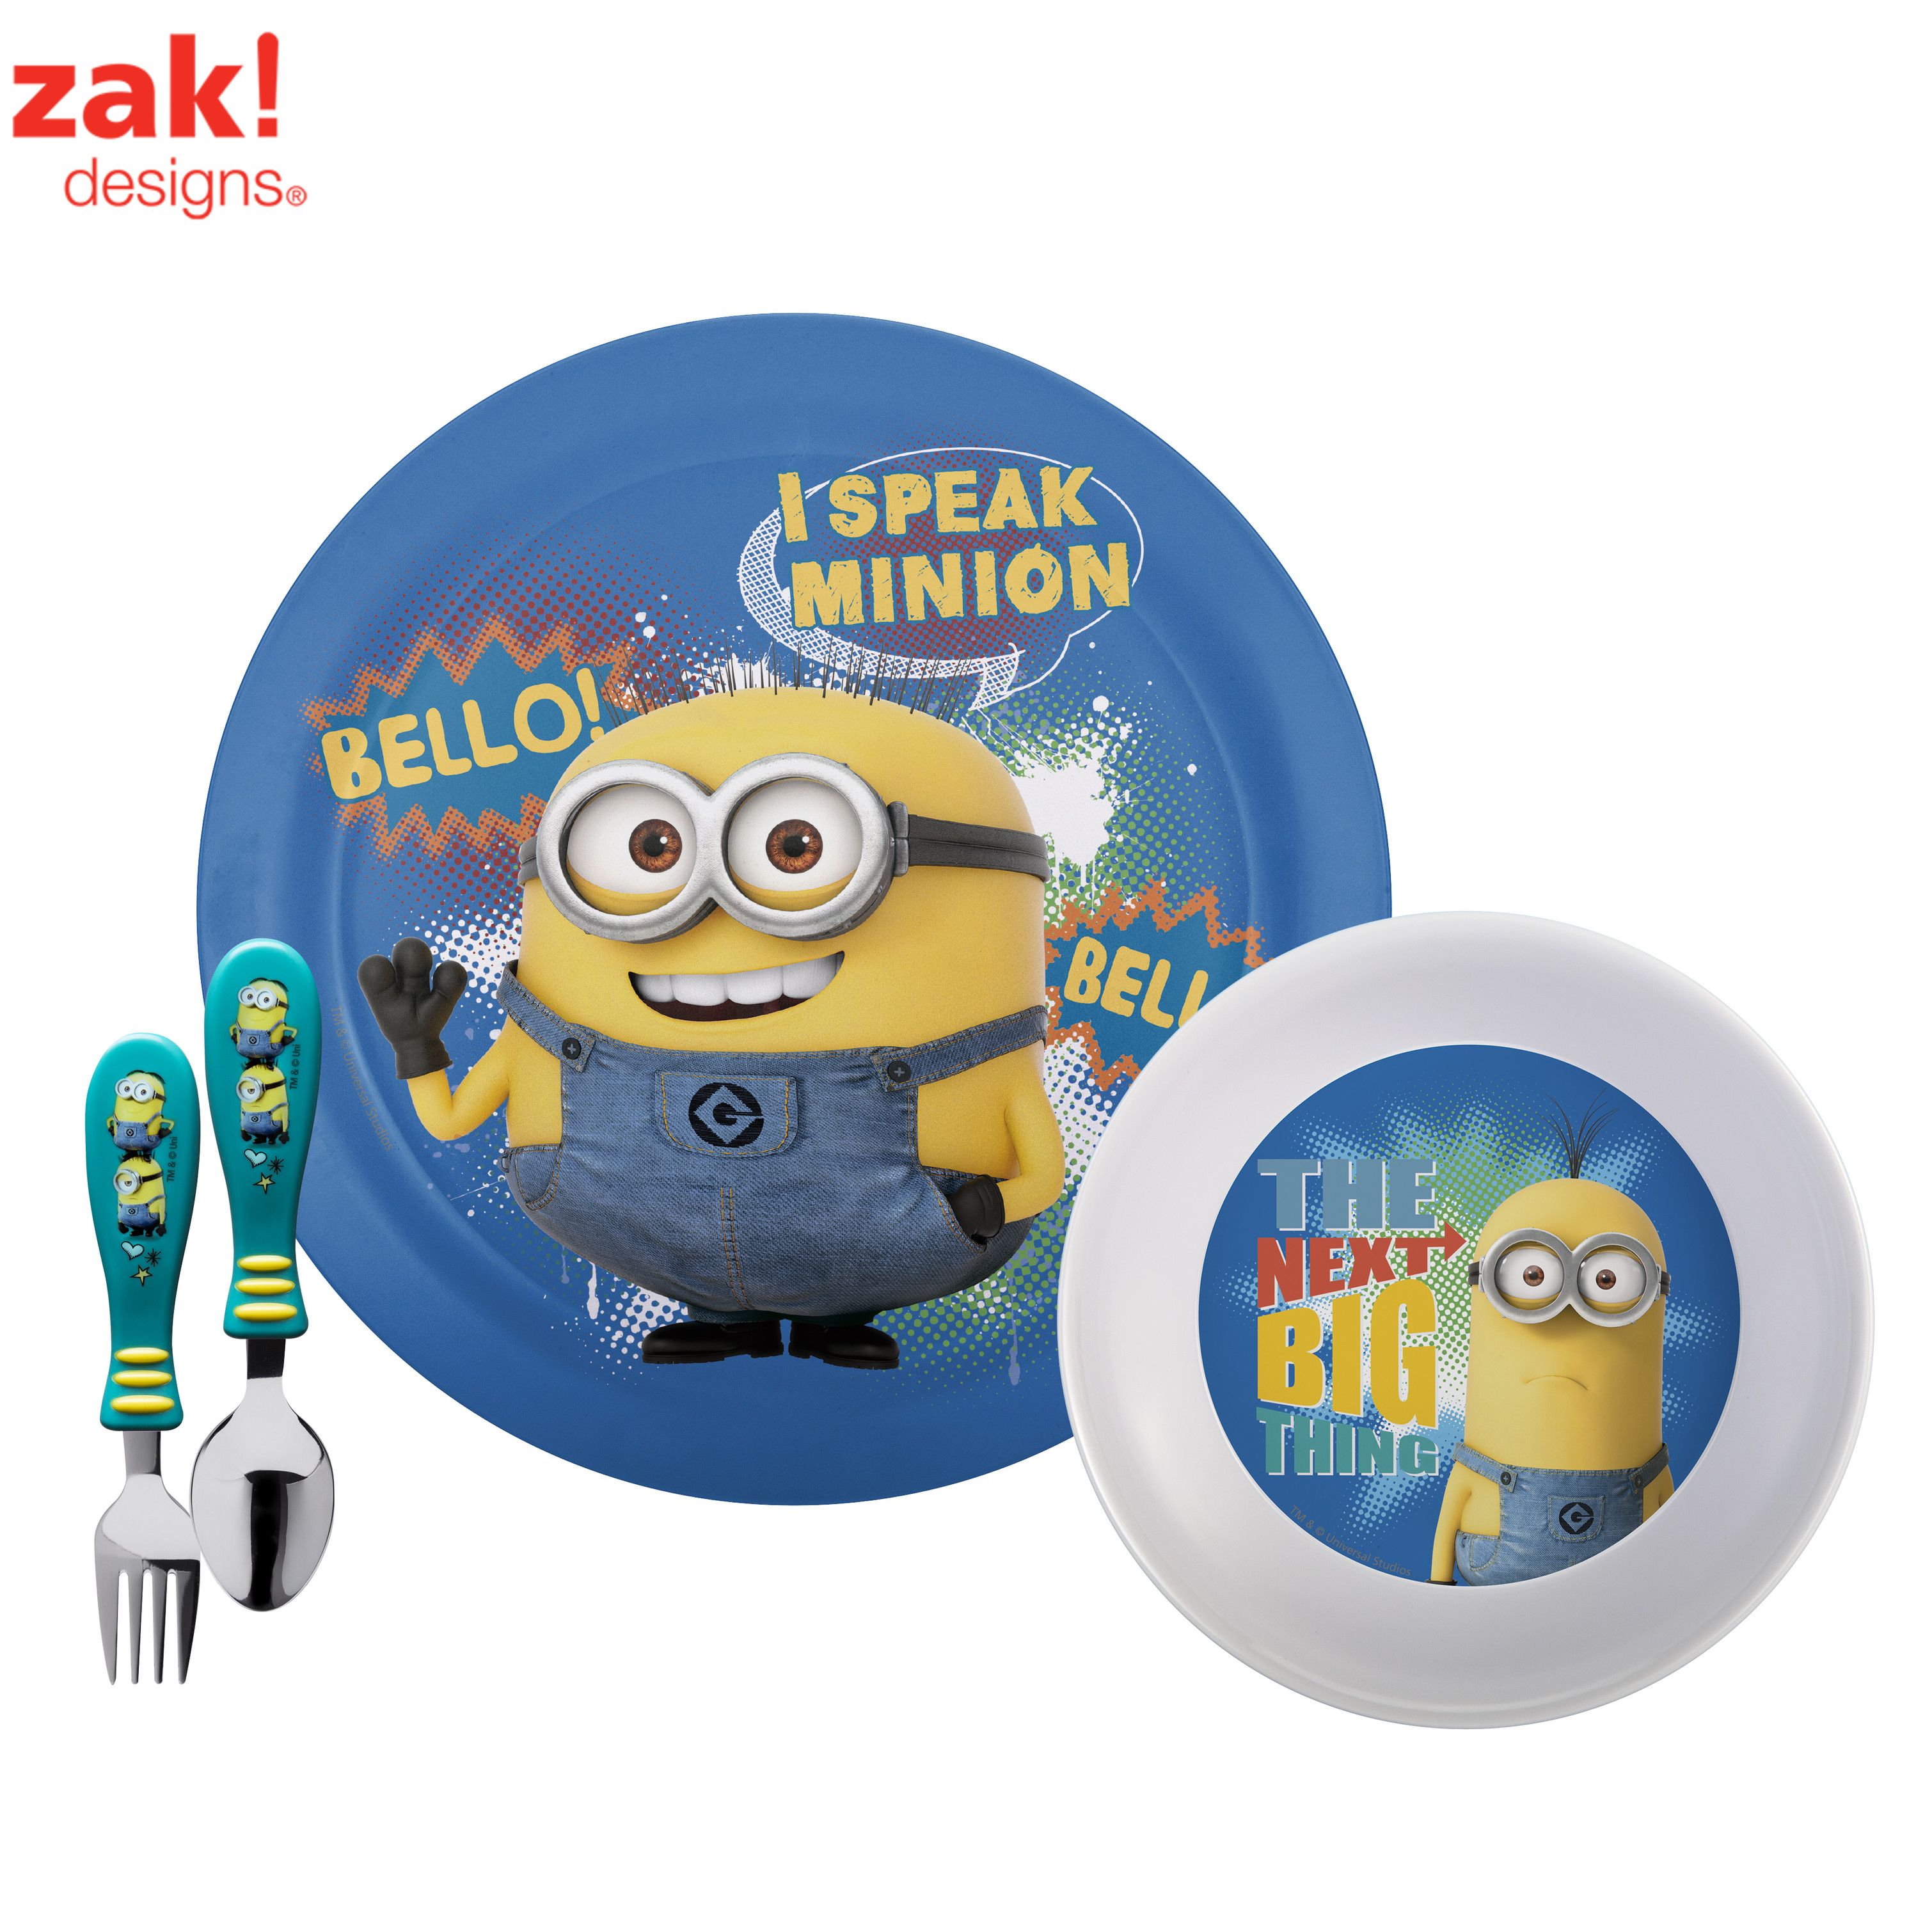 Despicable Me Minions Plate, Bowl & Flatware , 3-piece set